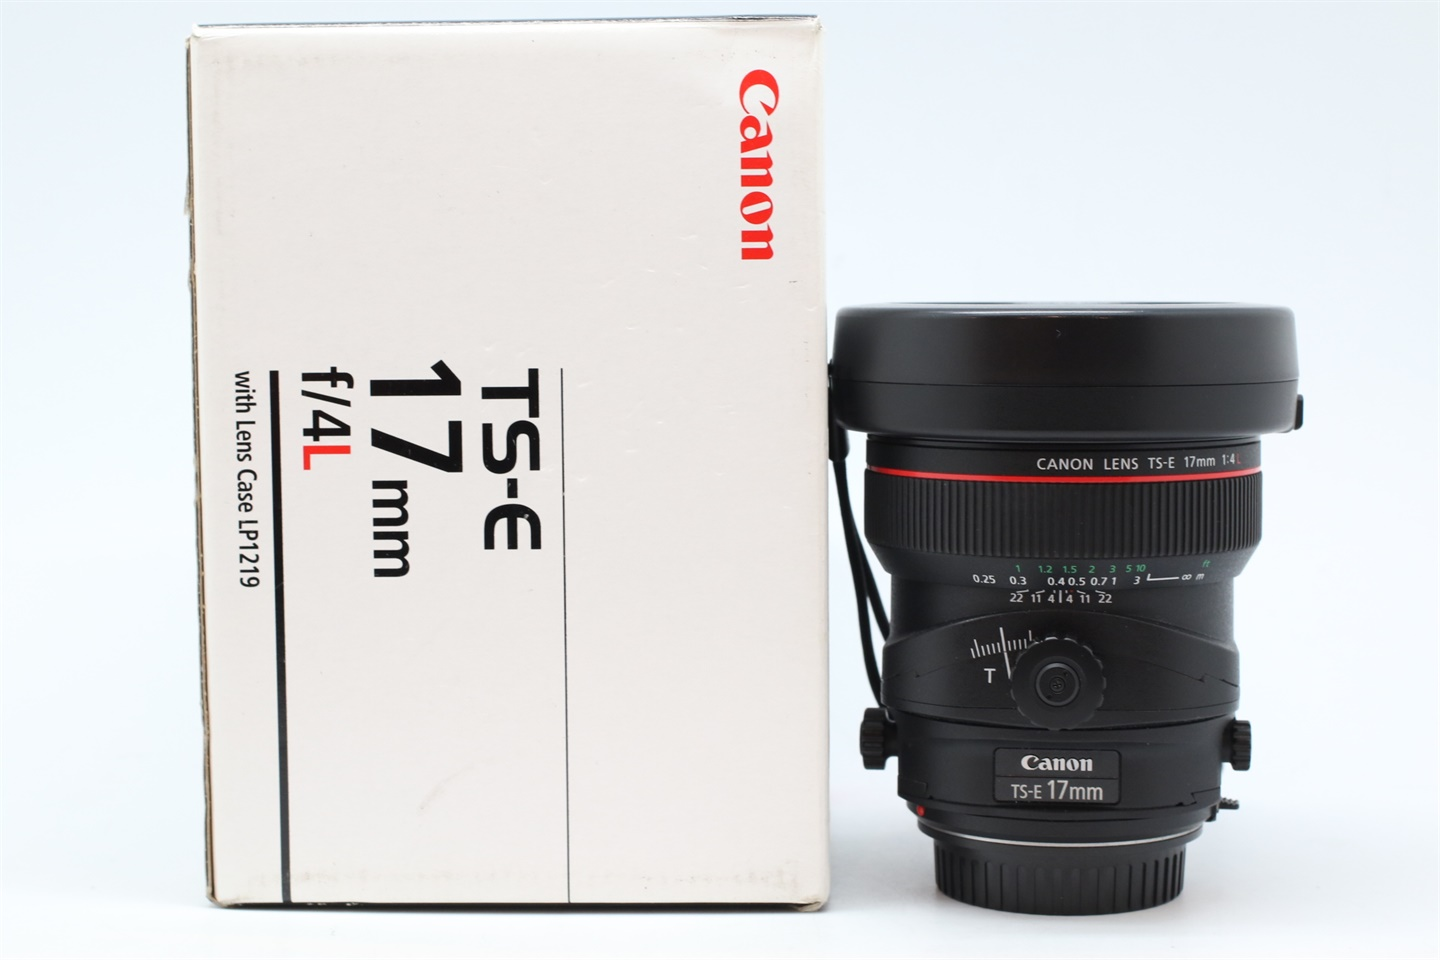 [USED-PUDU] CANON 17MM F4 L TS-E LENS 90%LIKE NEW CONDITION SN:19254